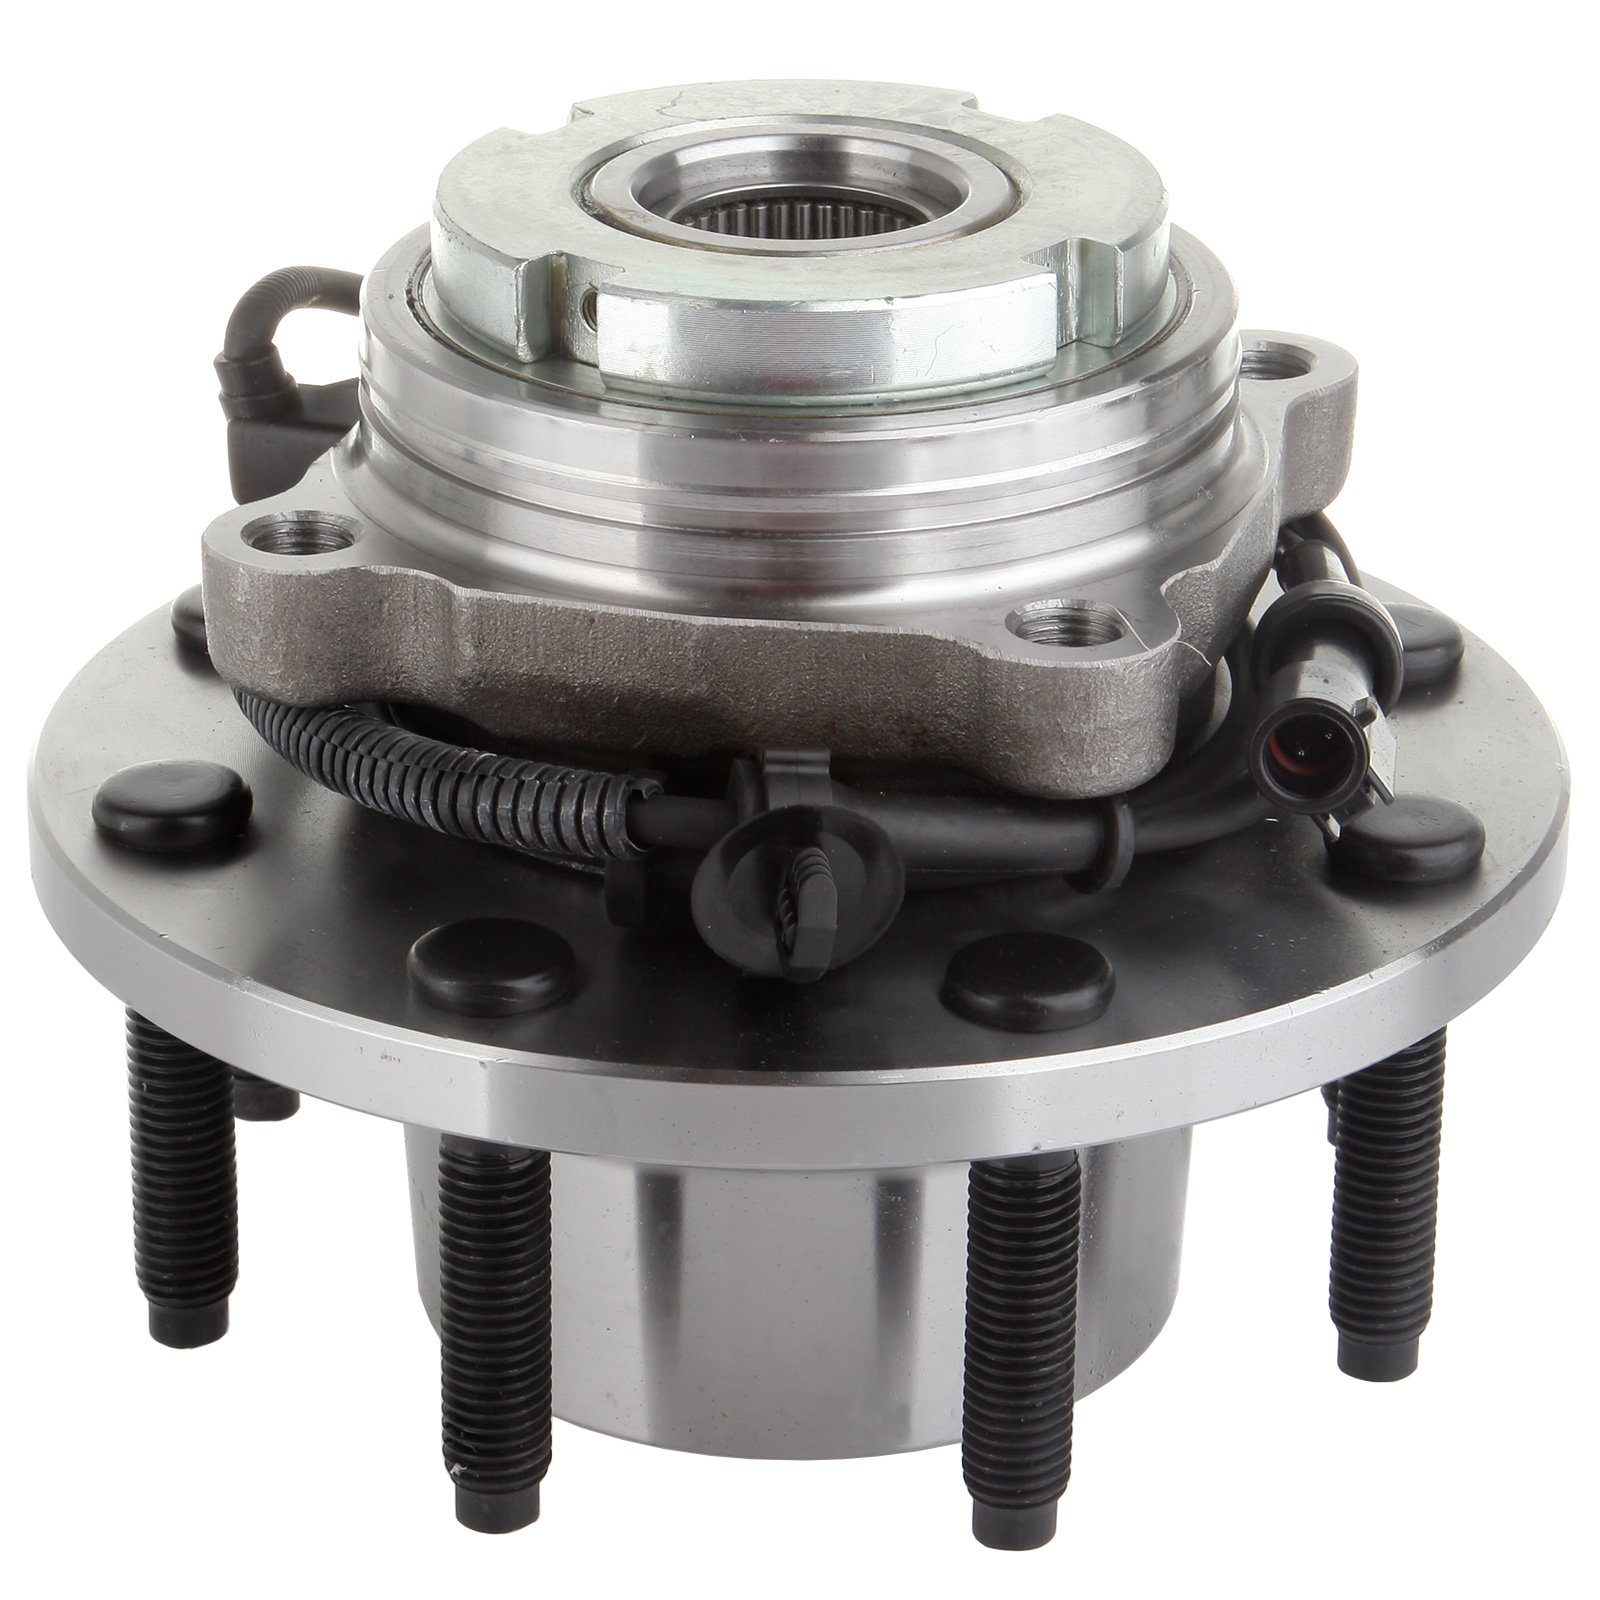 Front 515020 Wheel Hub Bearing Assembly for 1994-2004 Ford 8 Lugs W/ABS ECCPP